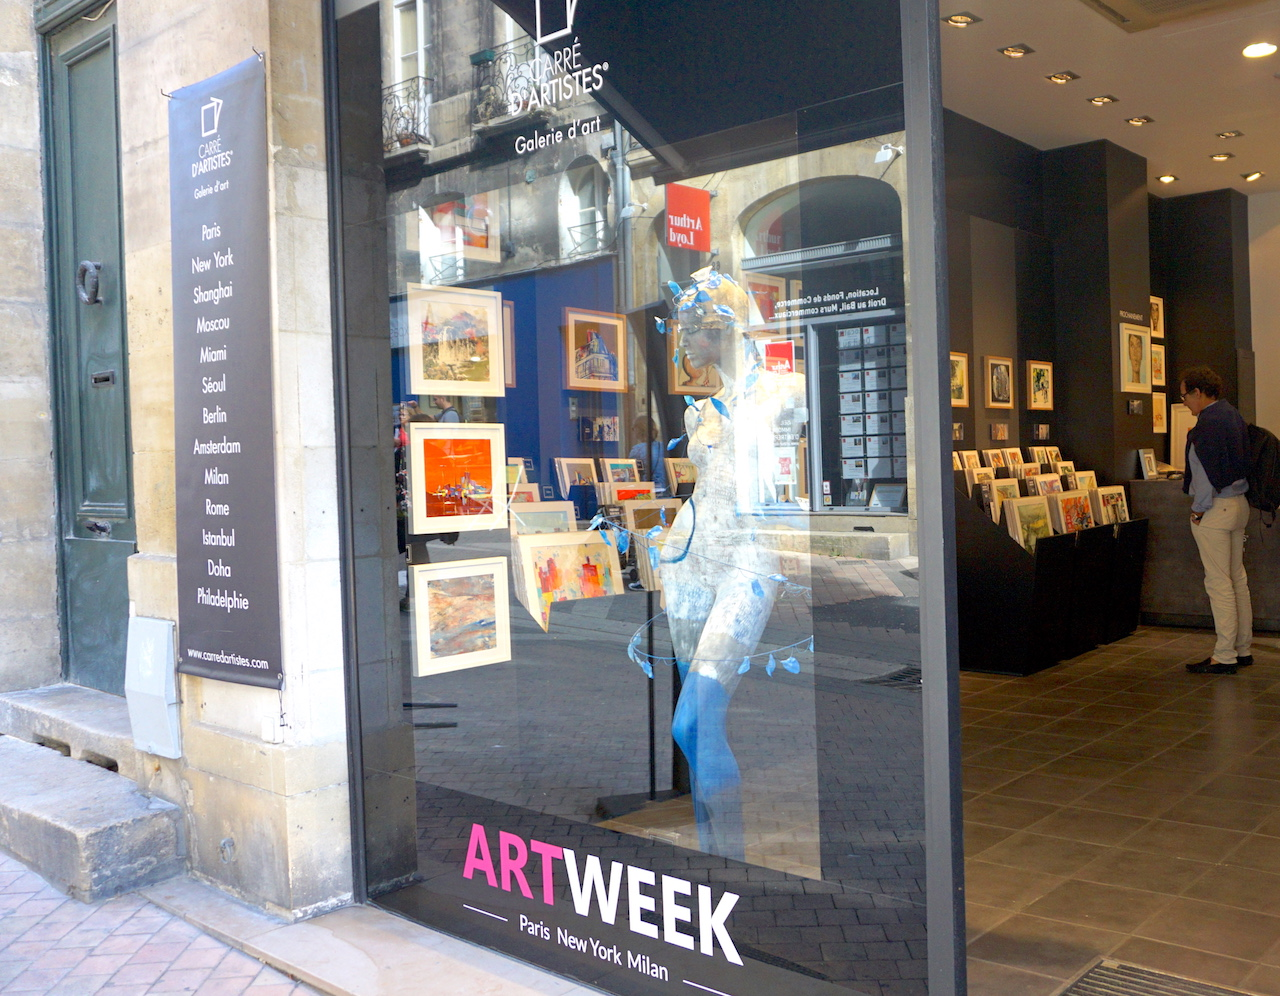 Small art galleries are cropping up around the city.